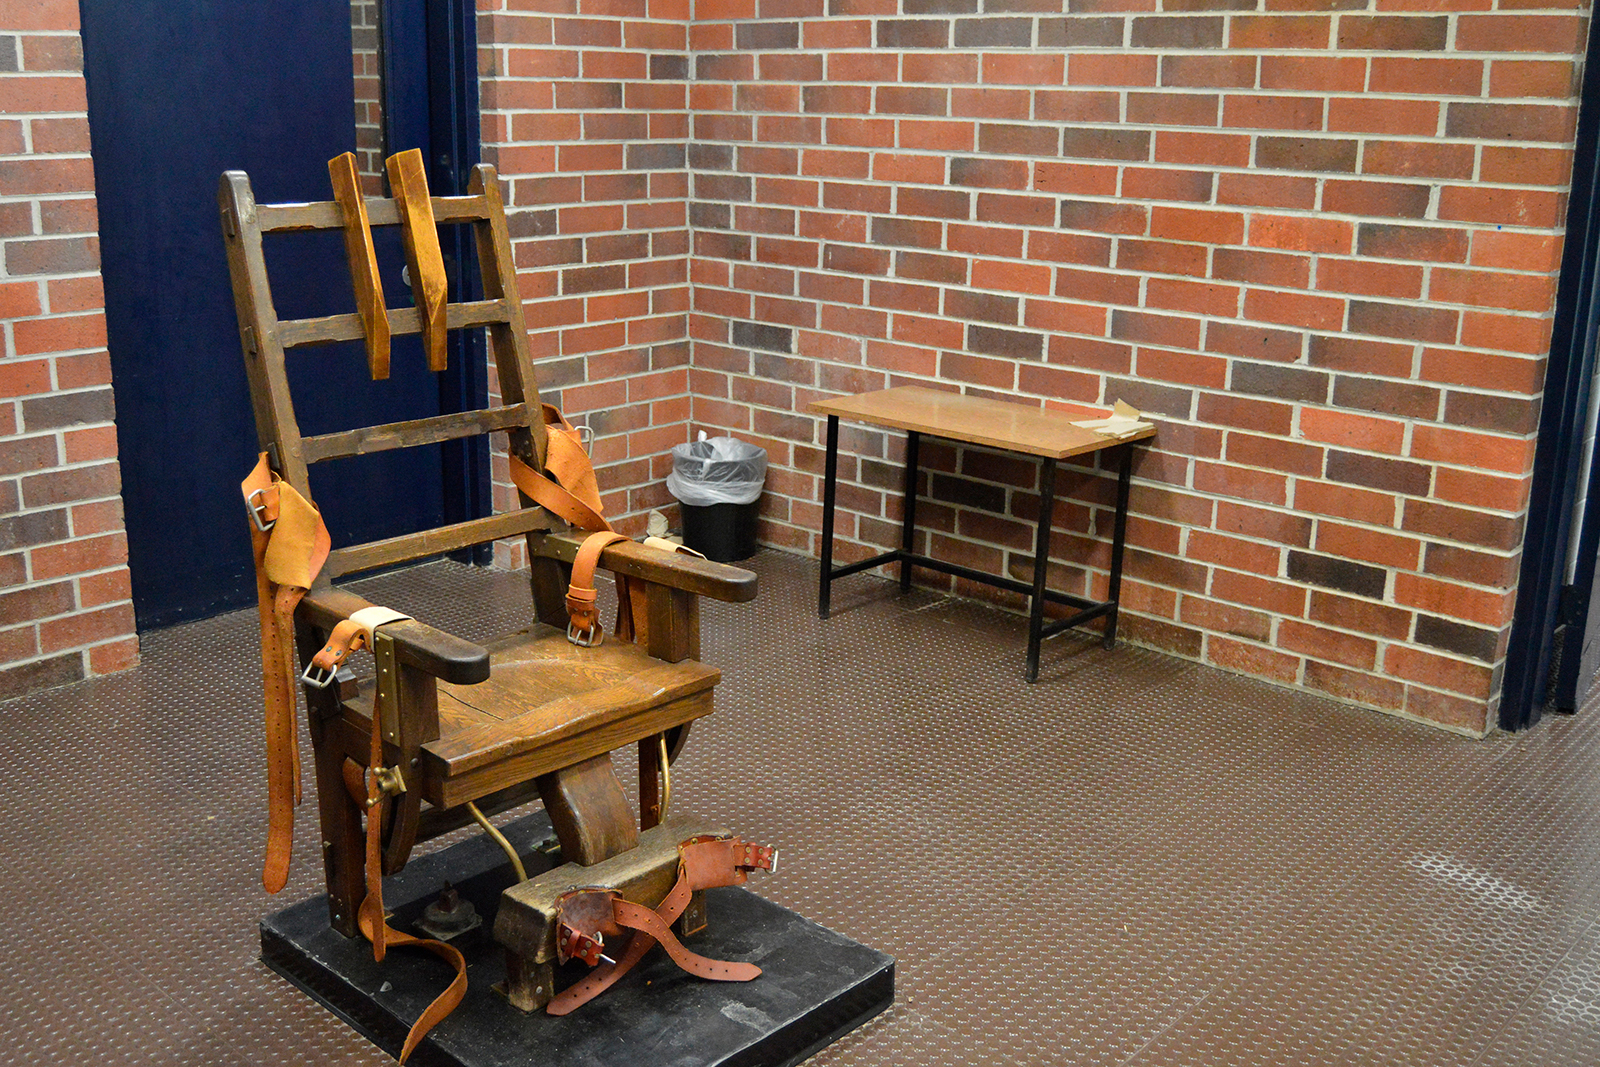 South Carolina may become the fourth state to allow executions by firing squad